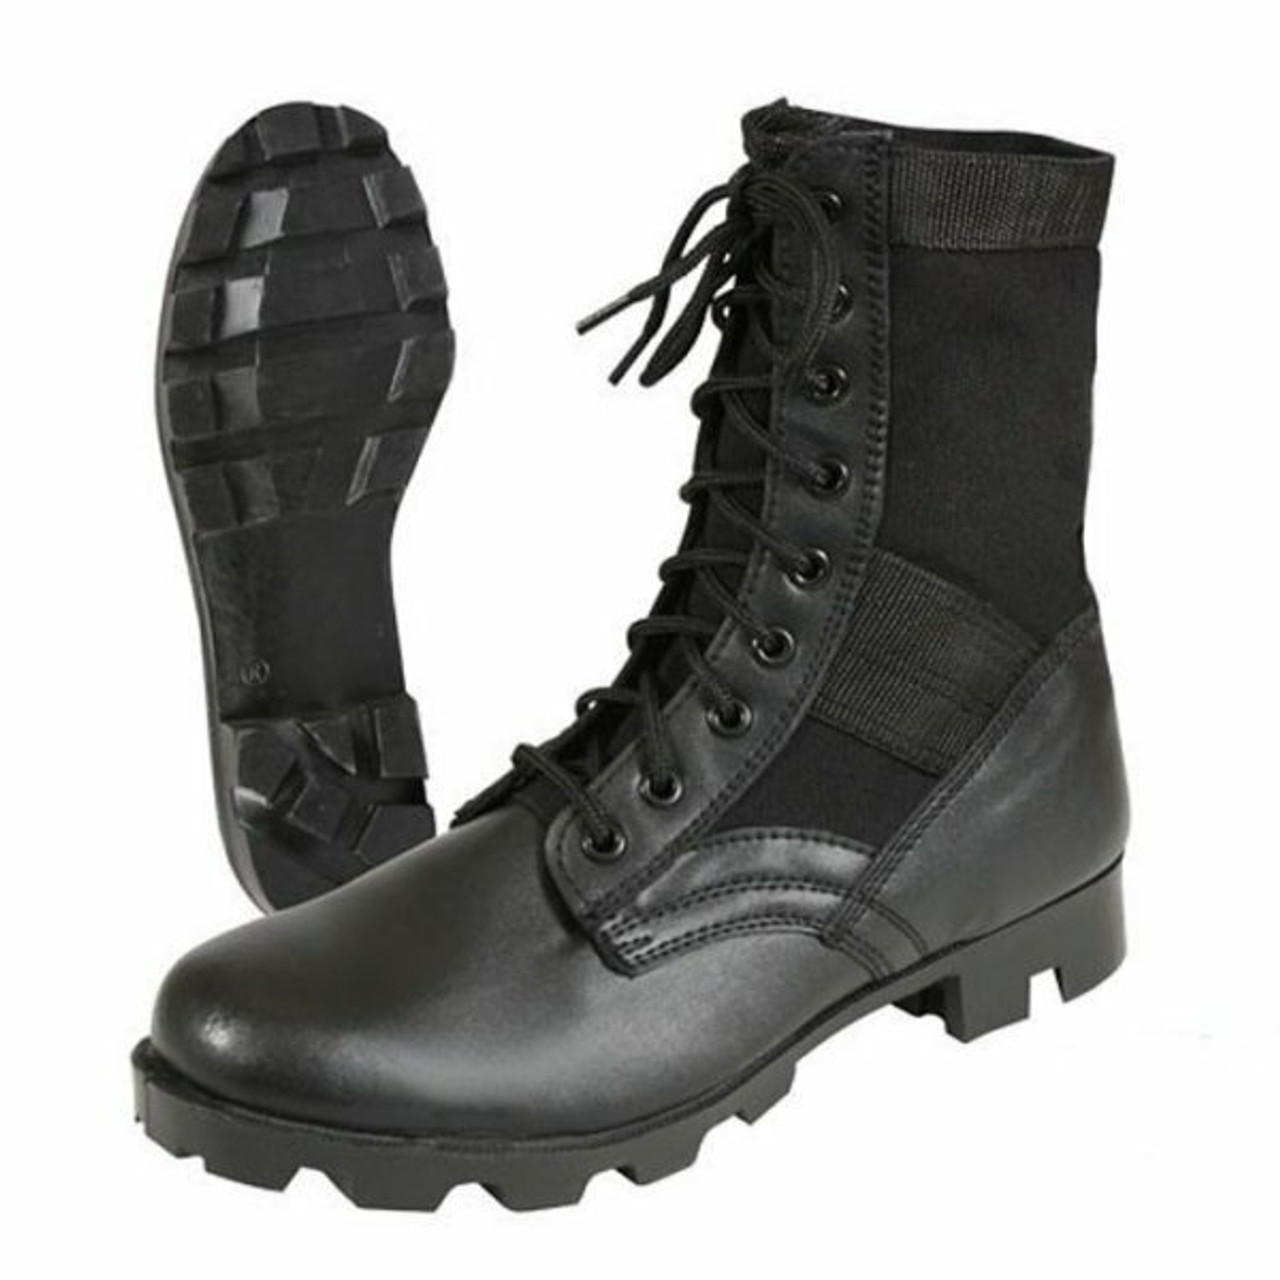 Classic Military Jungle Boots Rothco 5081